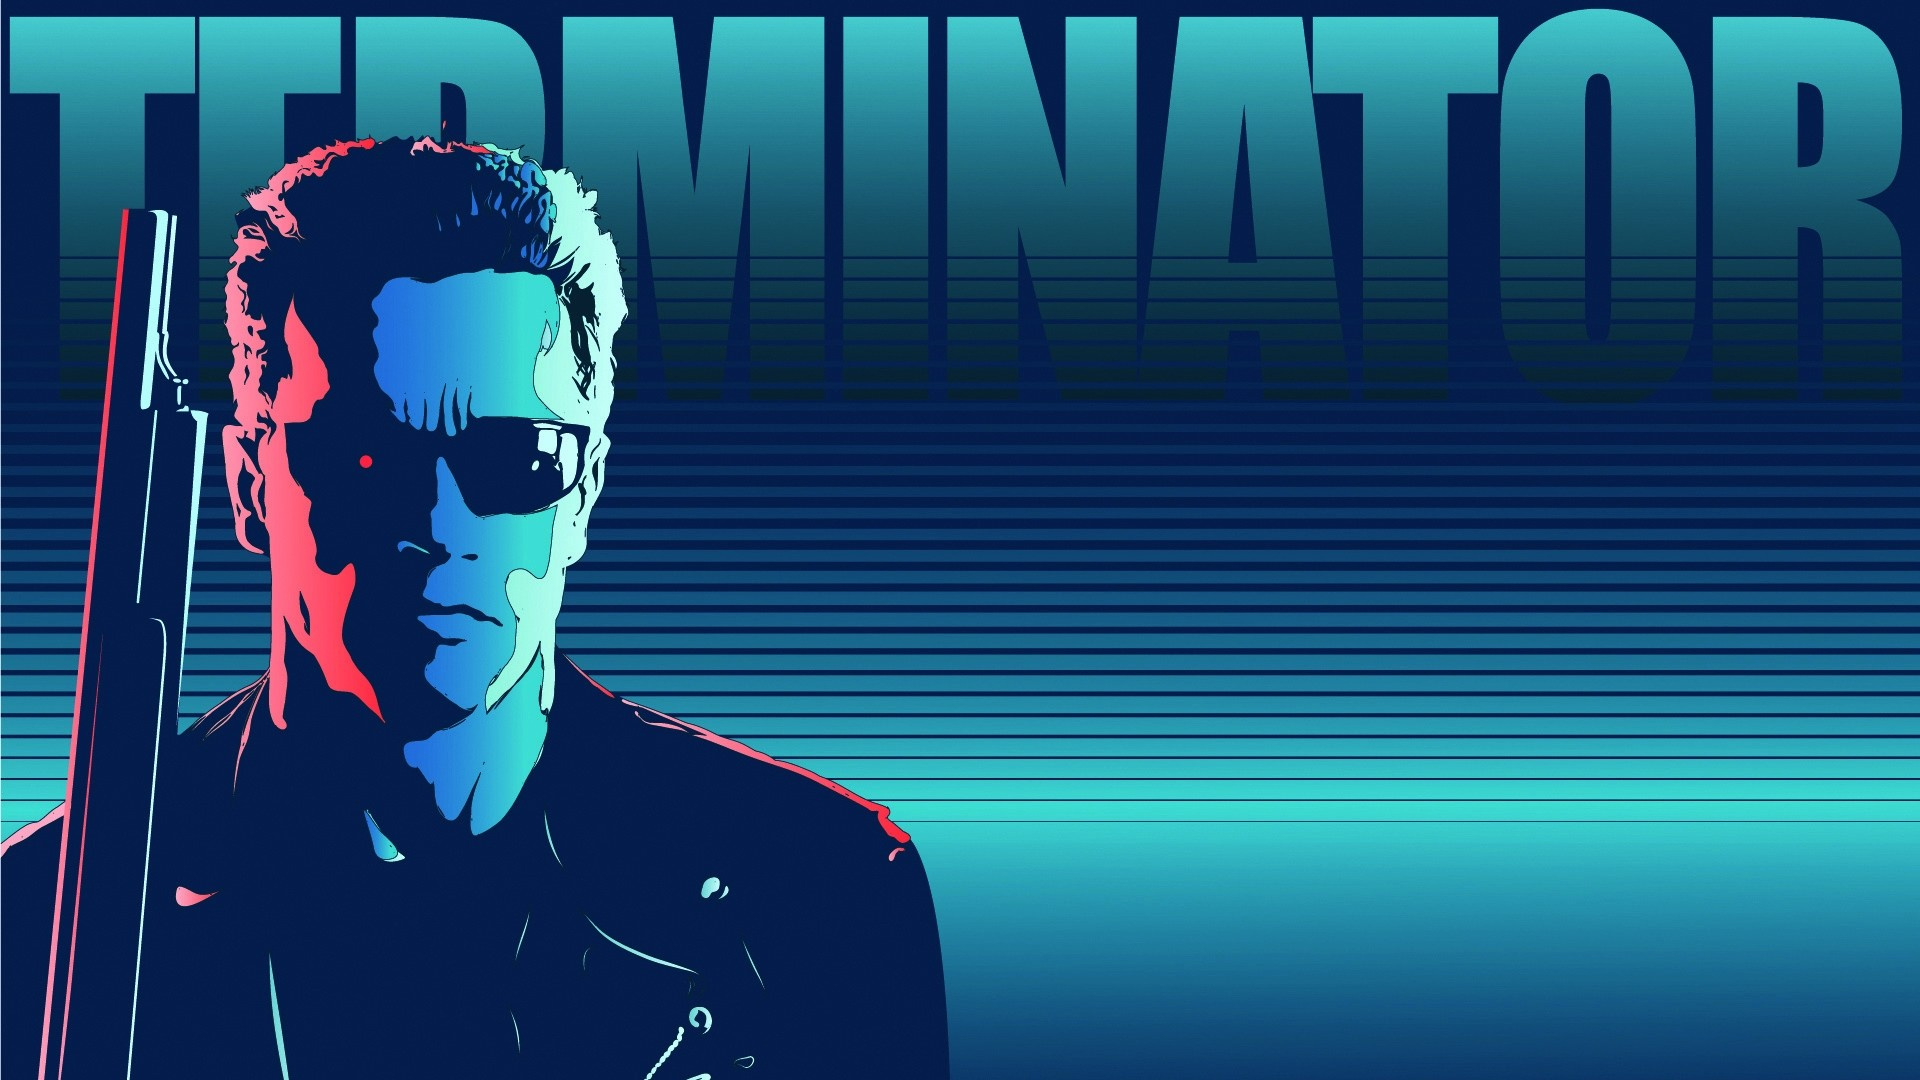 Res: 1920x1080, Terminator 2 Judgment Day Terminator 2 Judgment Day Wallpaper